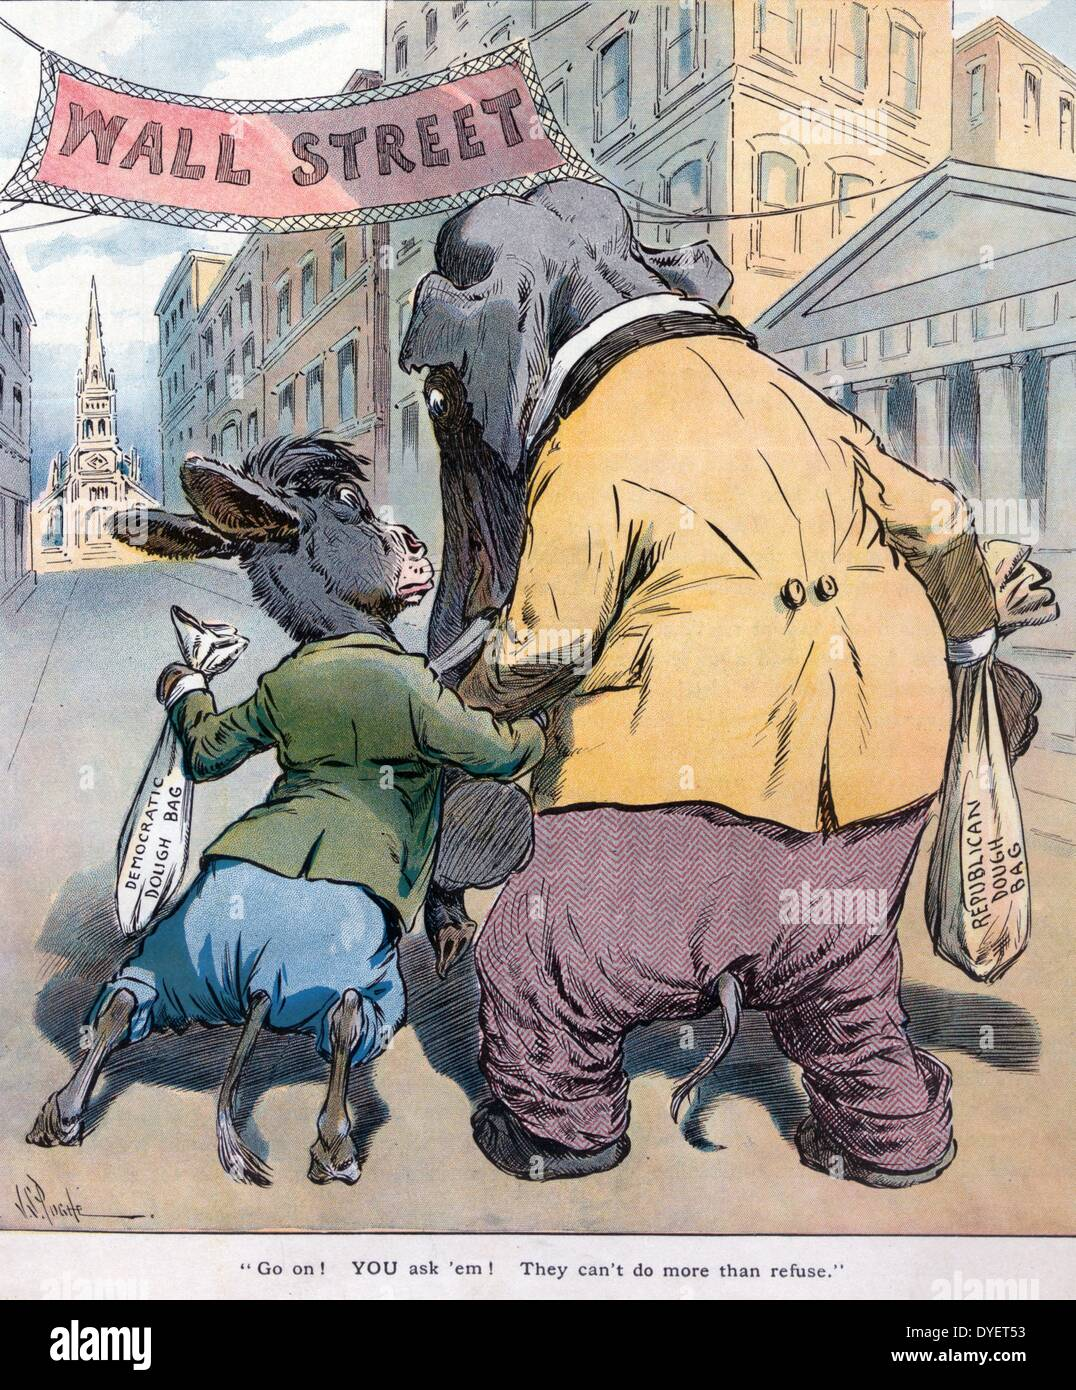 Go on! You ask 'em! They can't do more than refuse by J S Pughe, 1870-1909, artist. Published 1908. The Democratic donkey - Stock Image